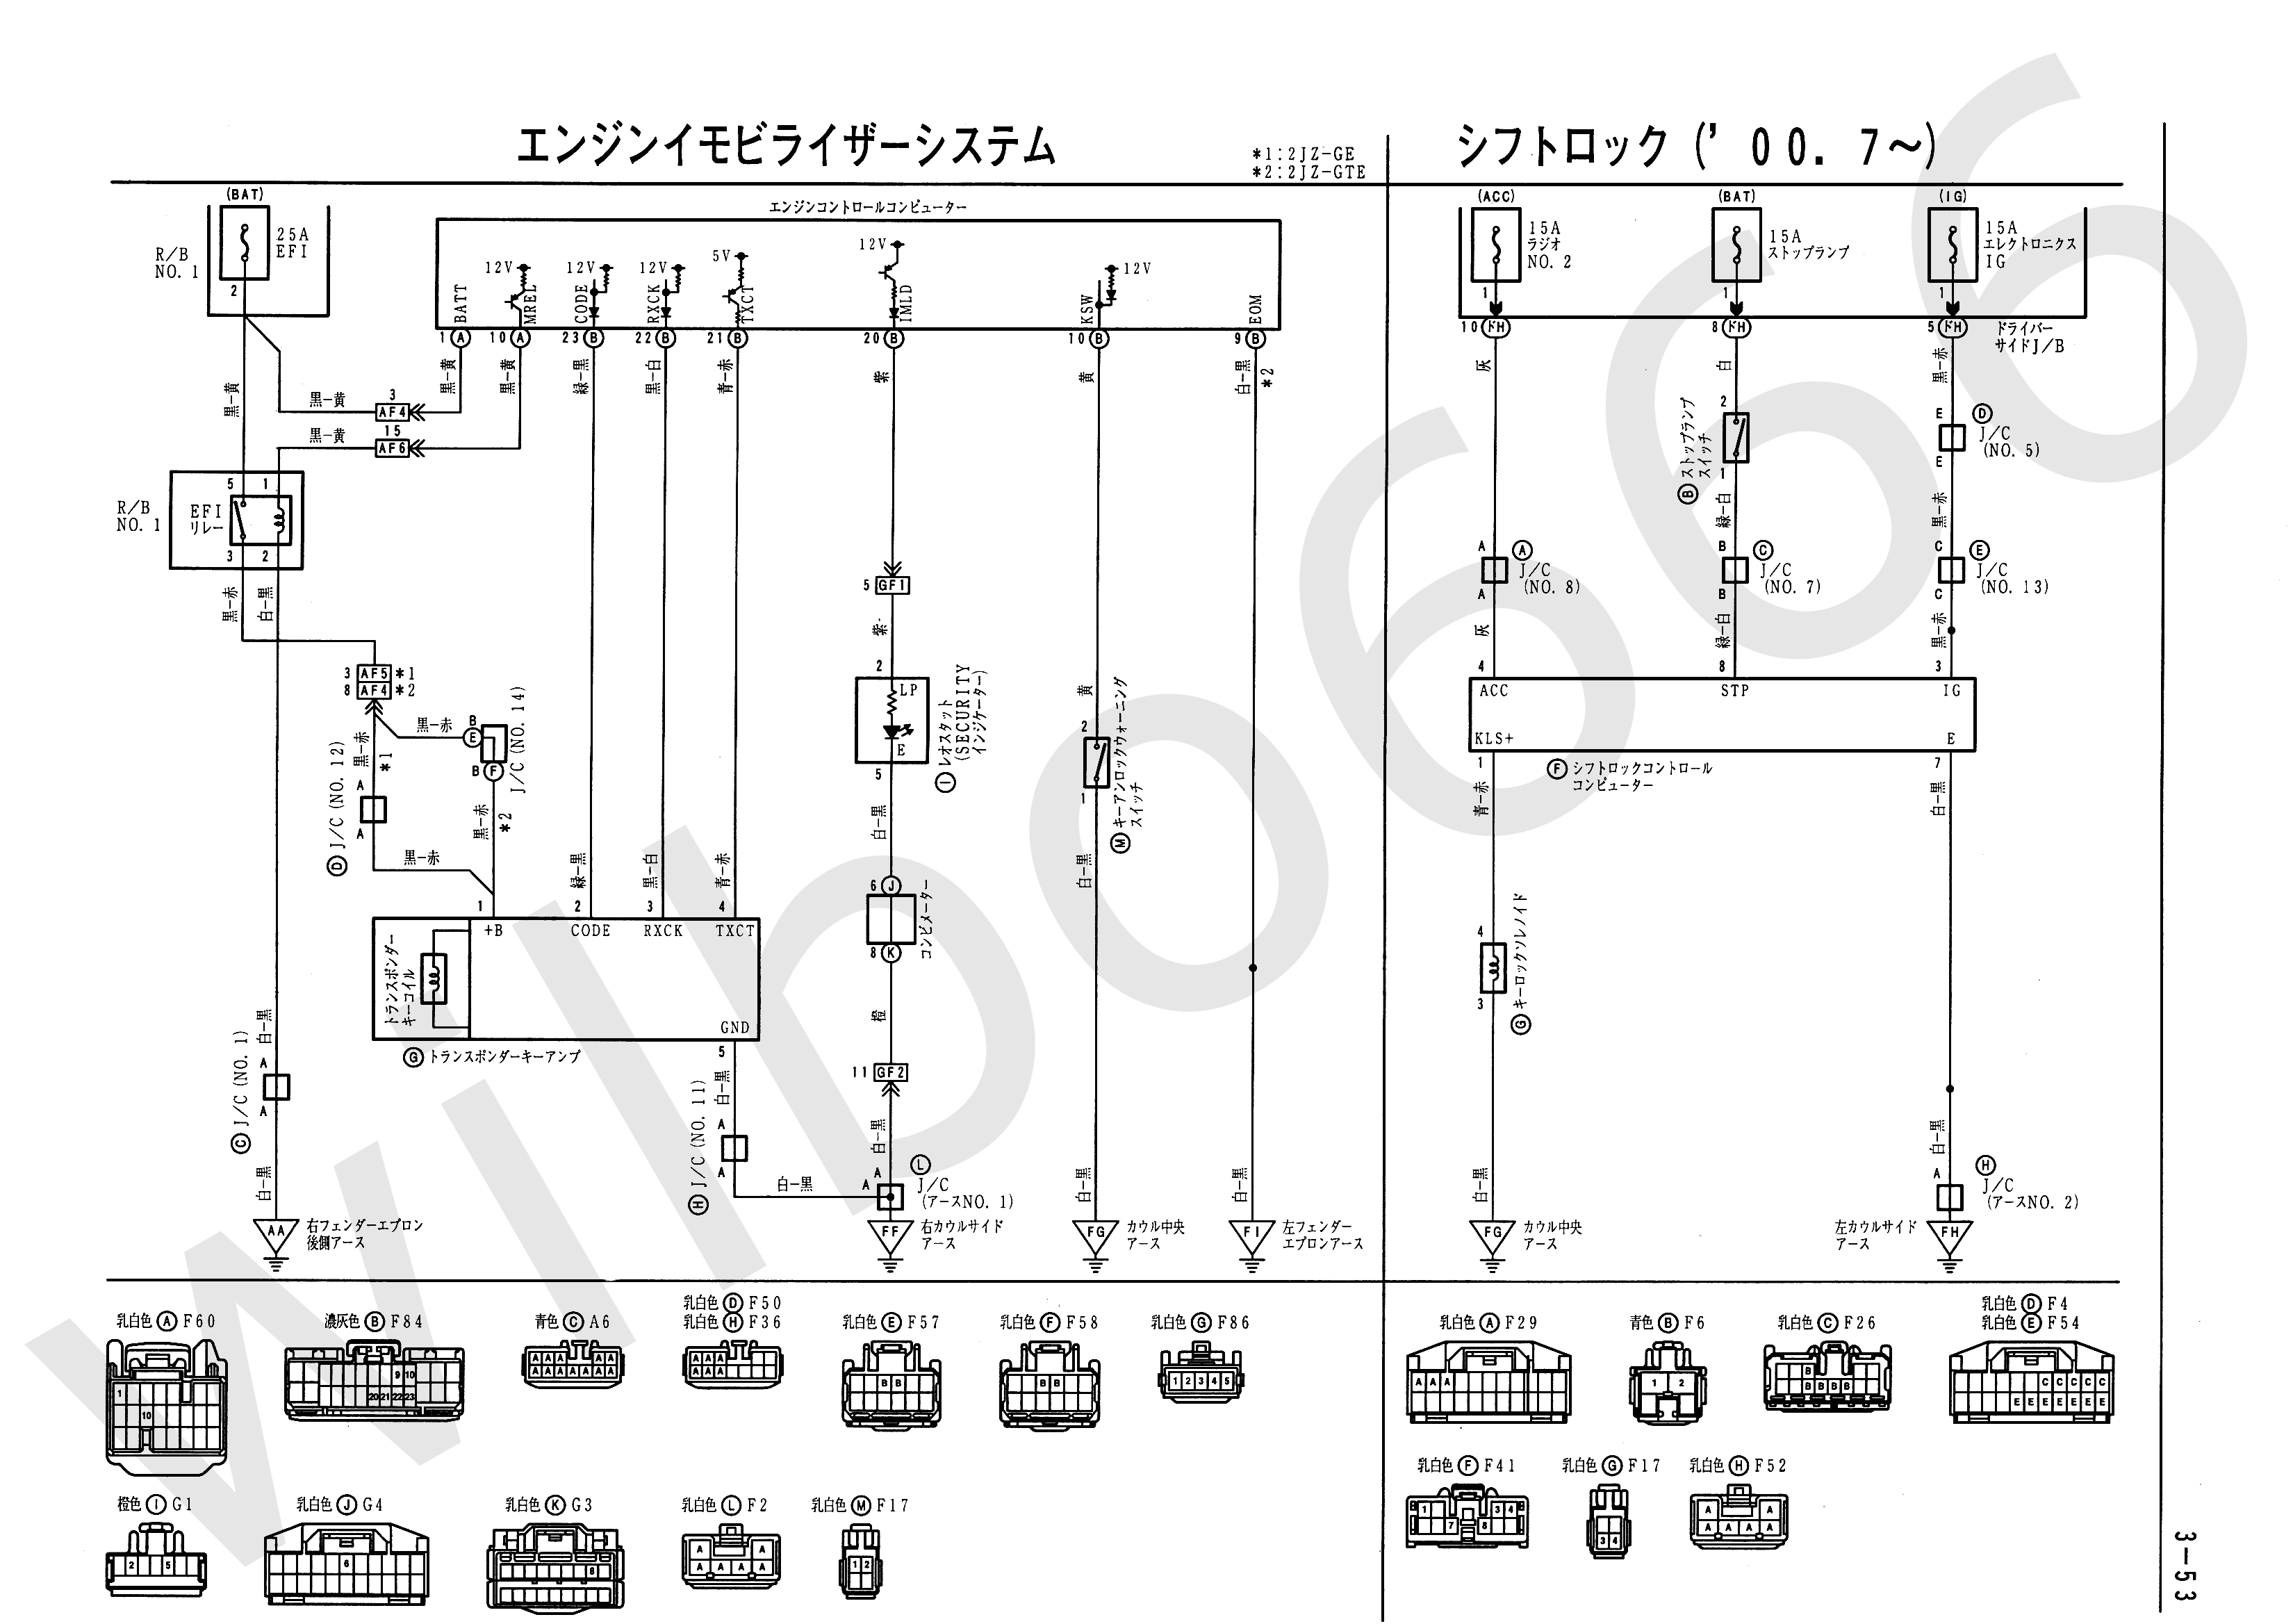 JZS161 Electrical Wiring Diagram 6748505 3 53 apexi vafc wiring diagram apexi vafc wiring diagram at gsmx.co